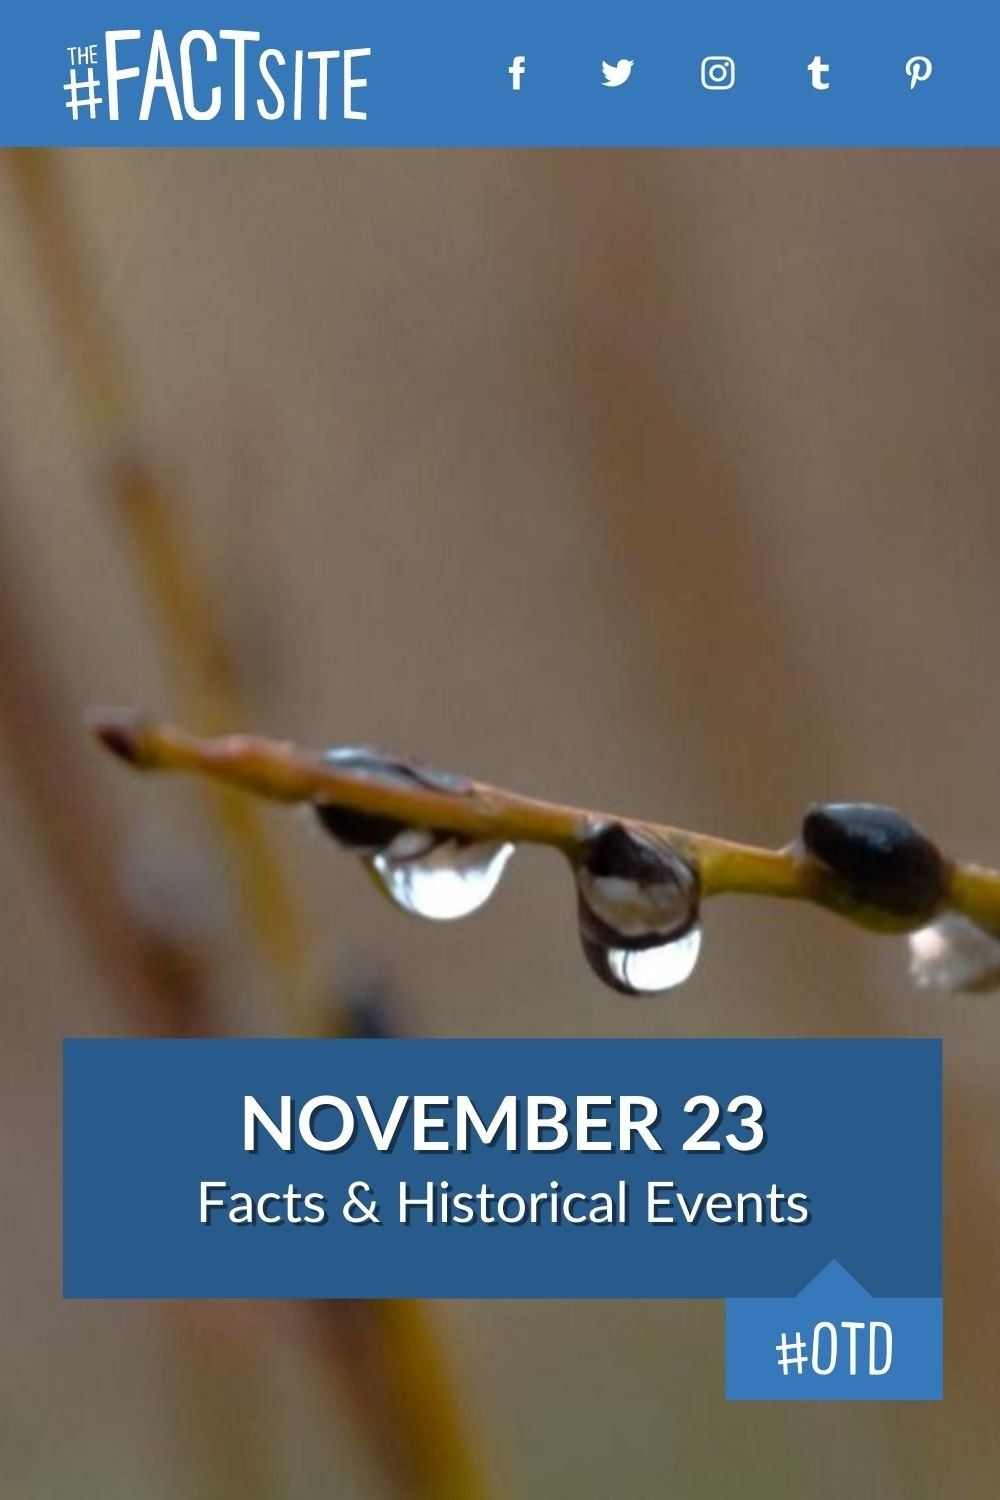 Facts & Historic Events That Happened on November 23